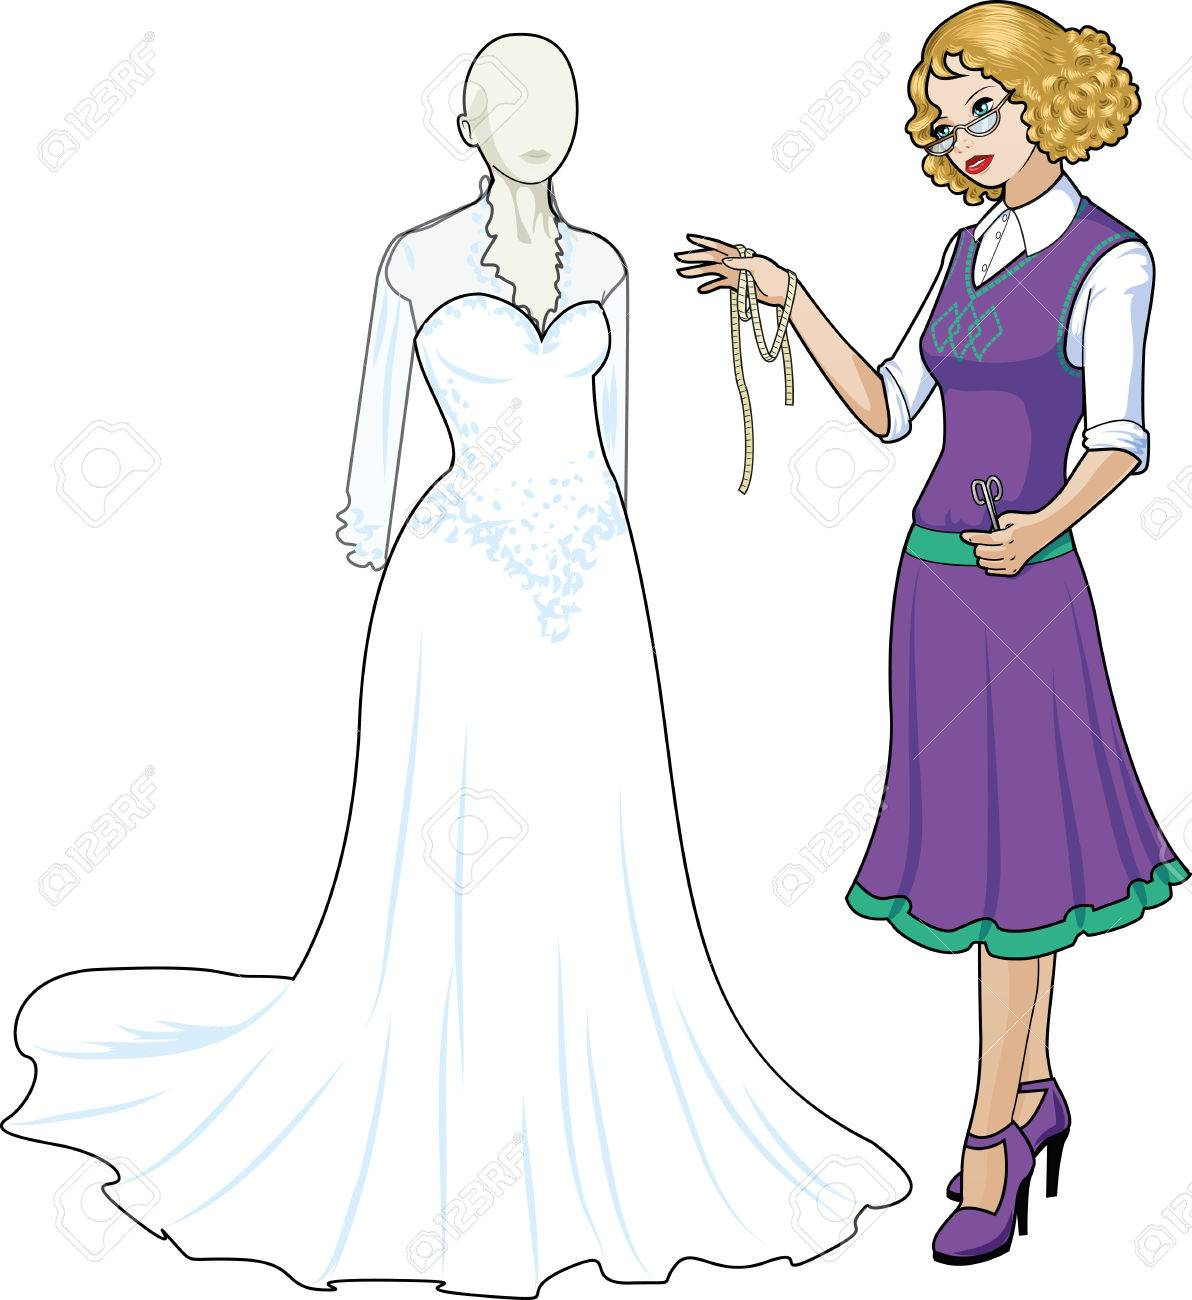 Beautiful caucasian female professional costume designer works on traditional white wedding gown dressed mannequin isolated cartoon illustrations Stock Vector - 26008774